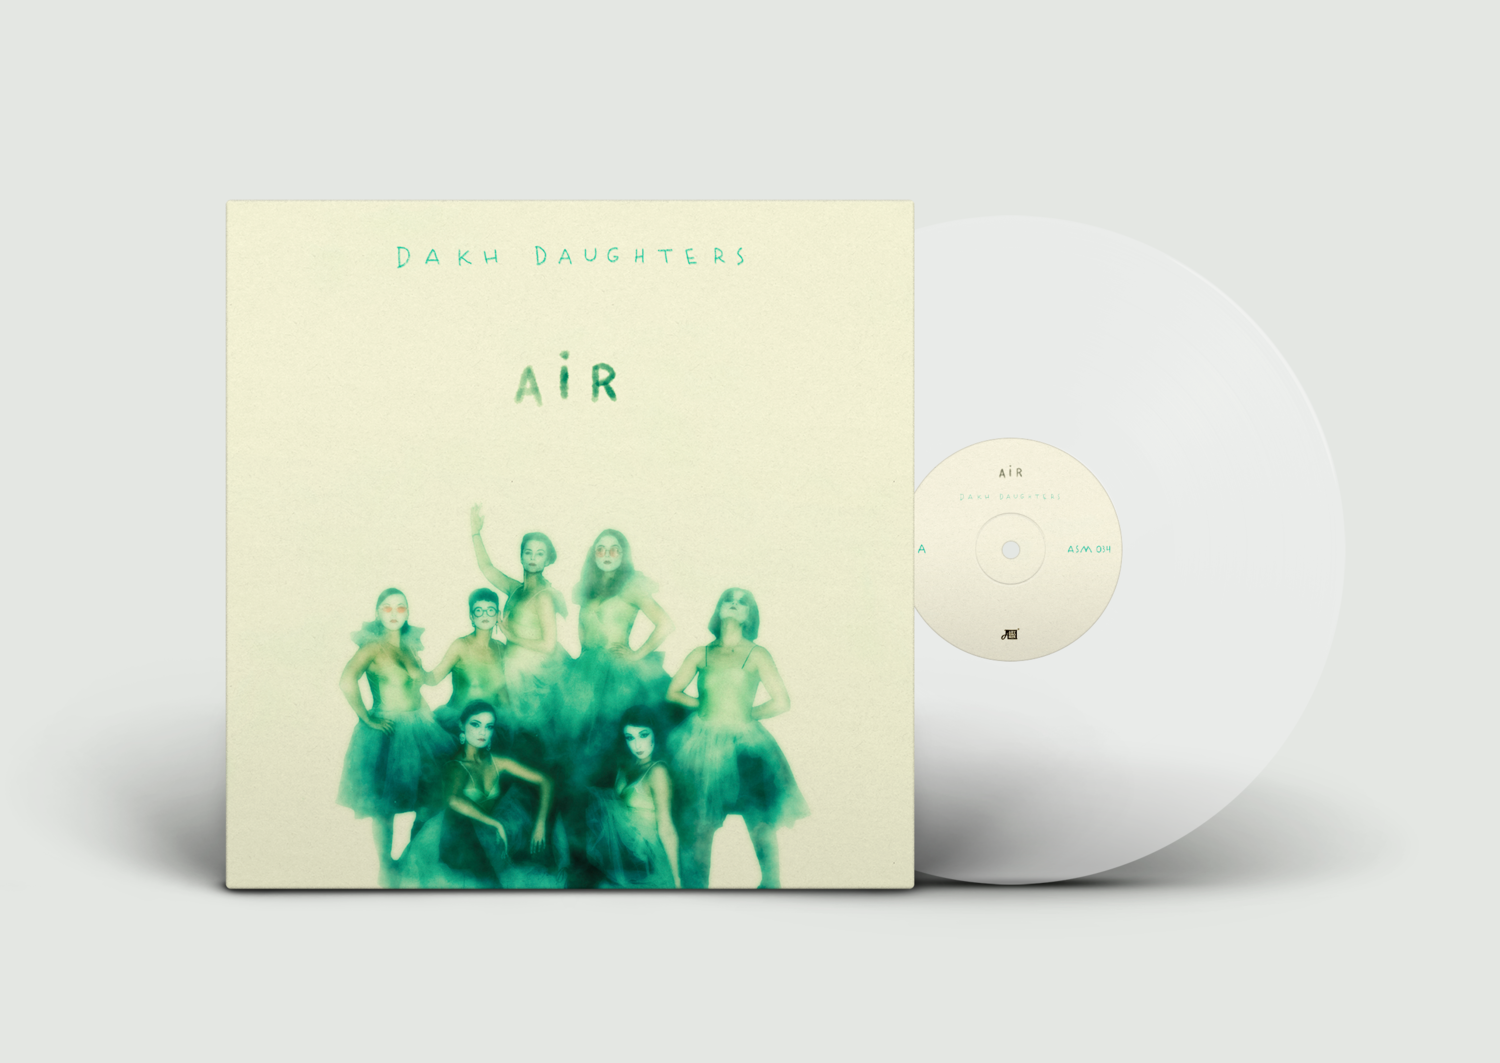 Dakh Daughters - AIR